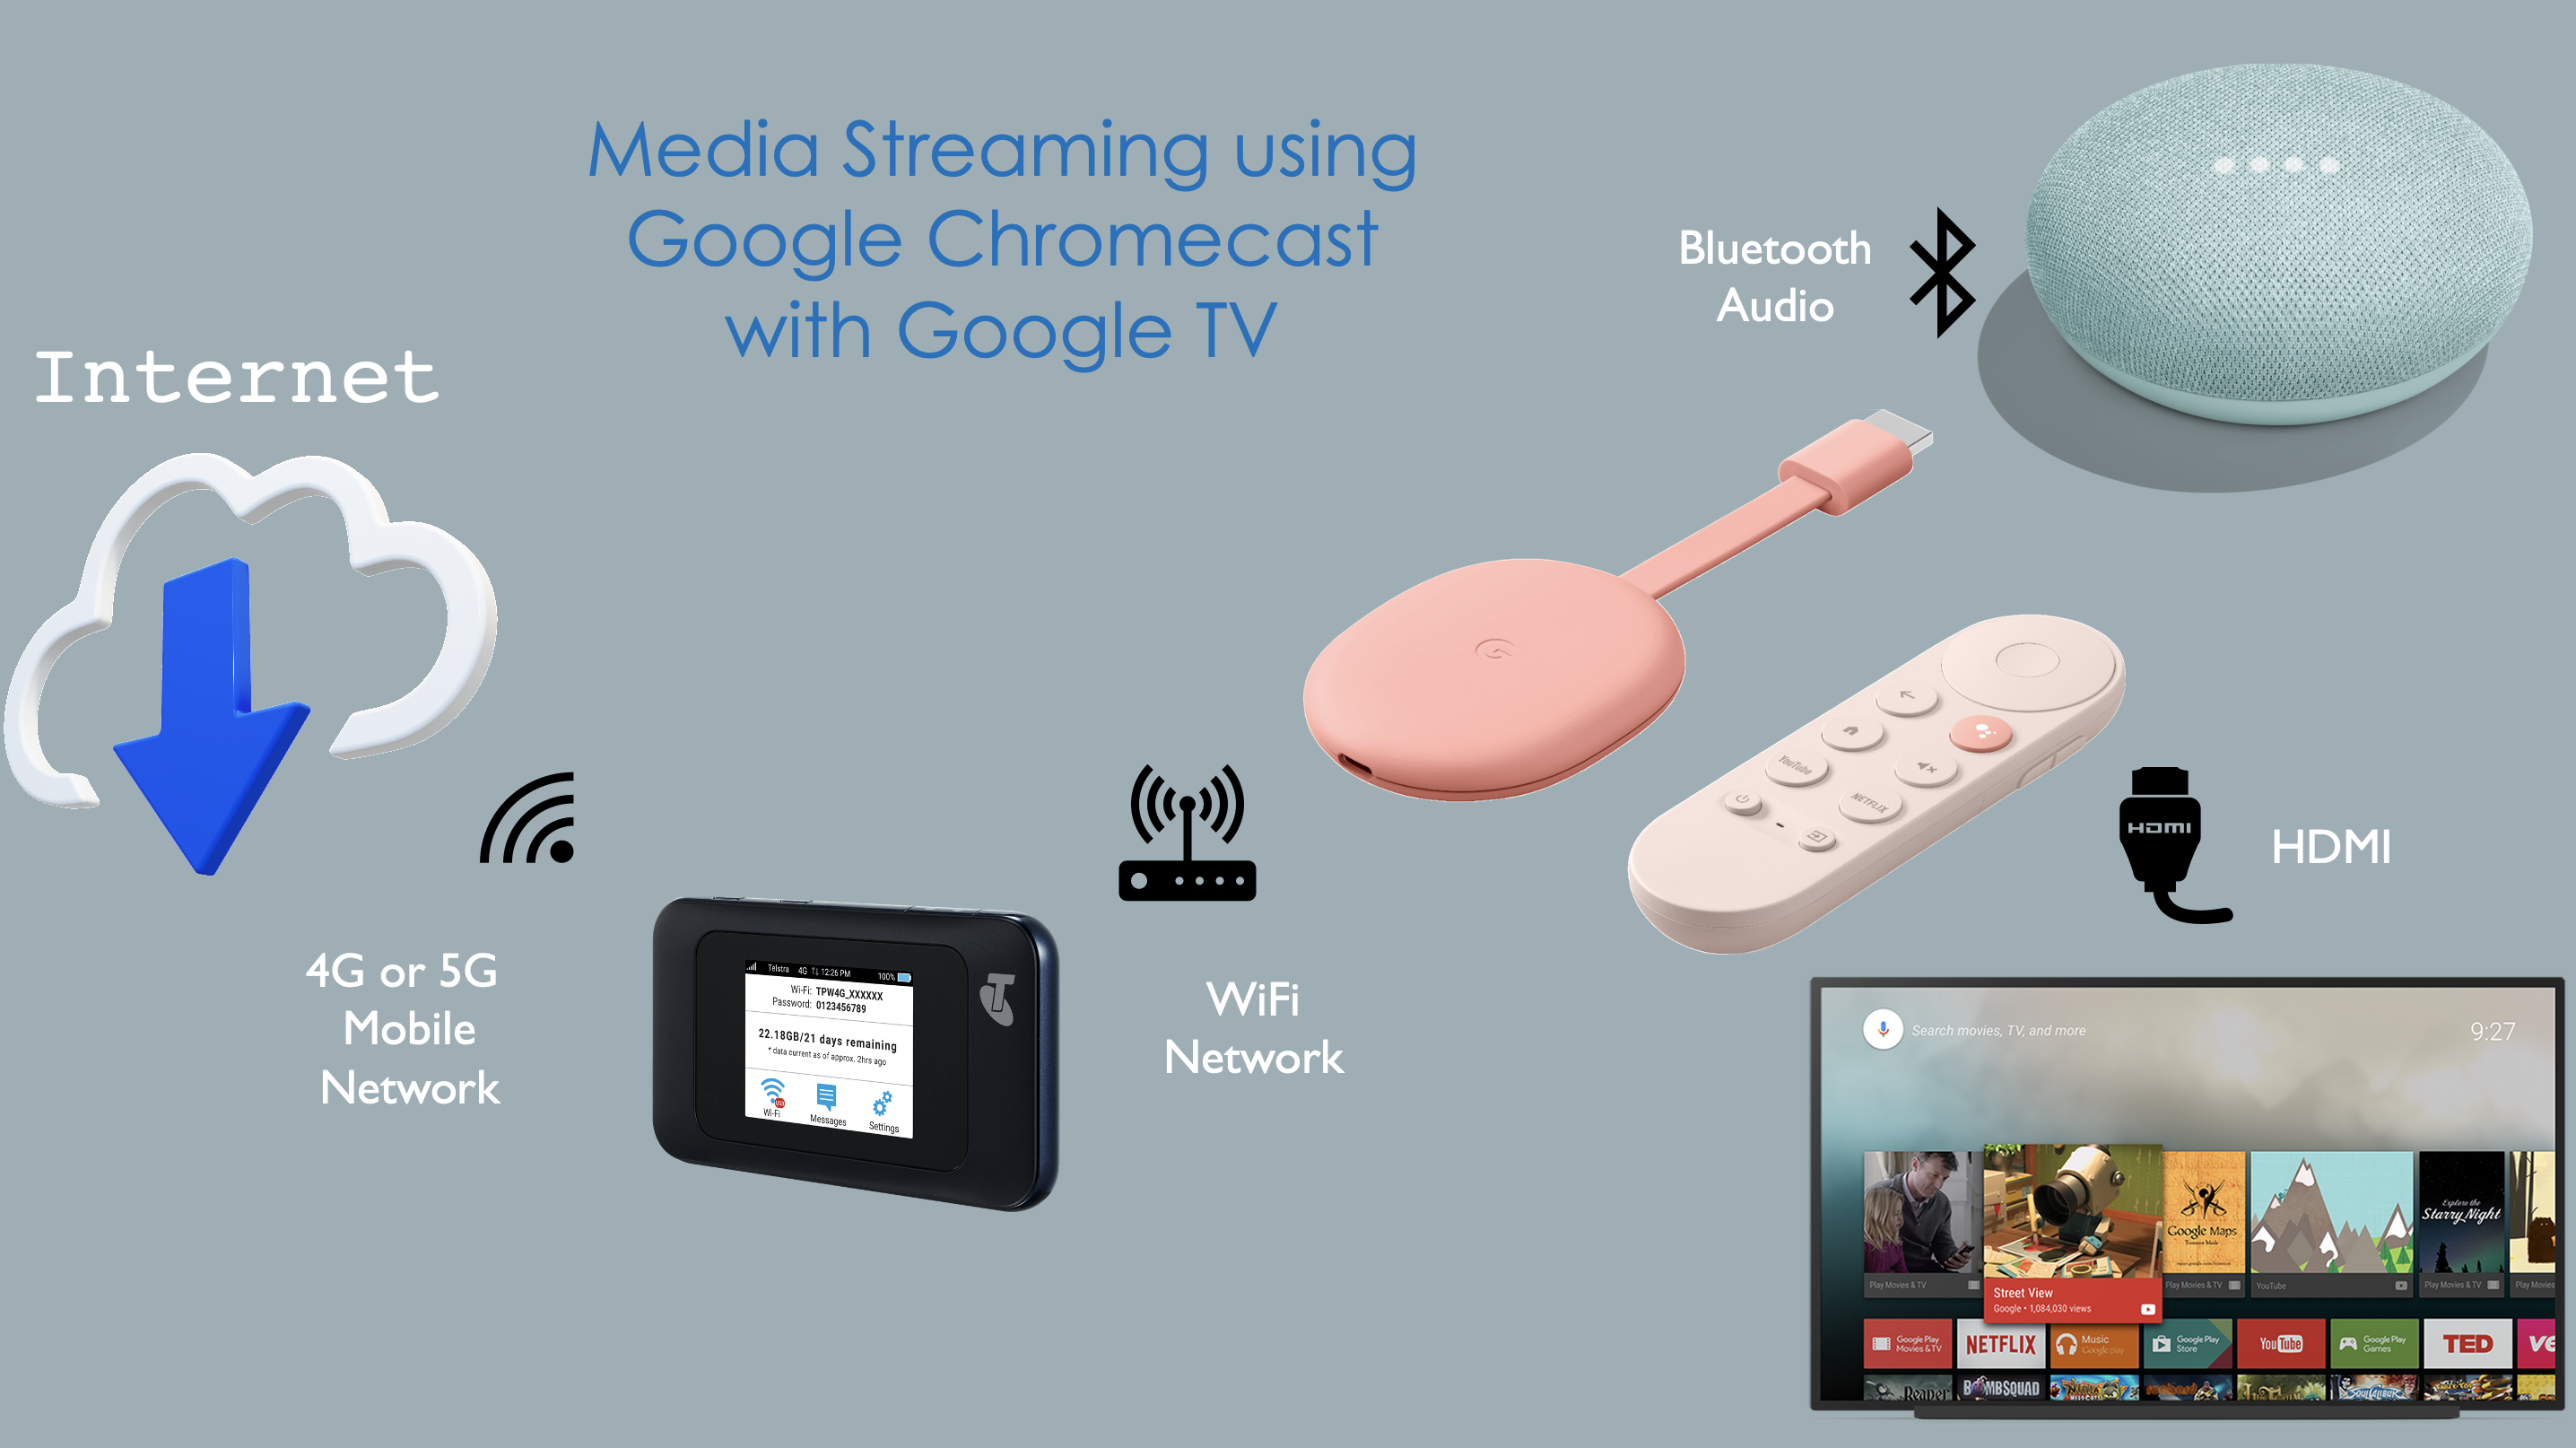 Google Chromecast setup diagram